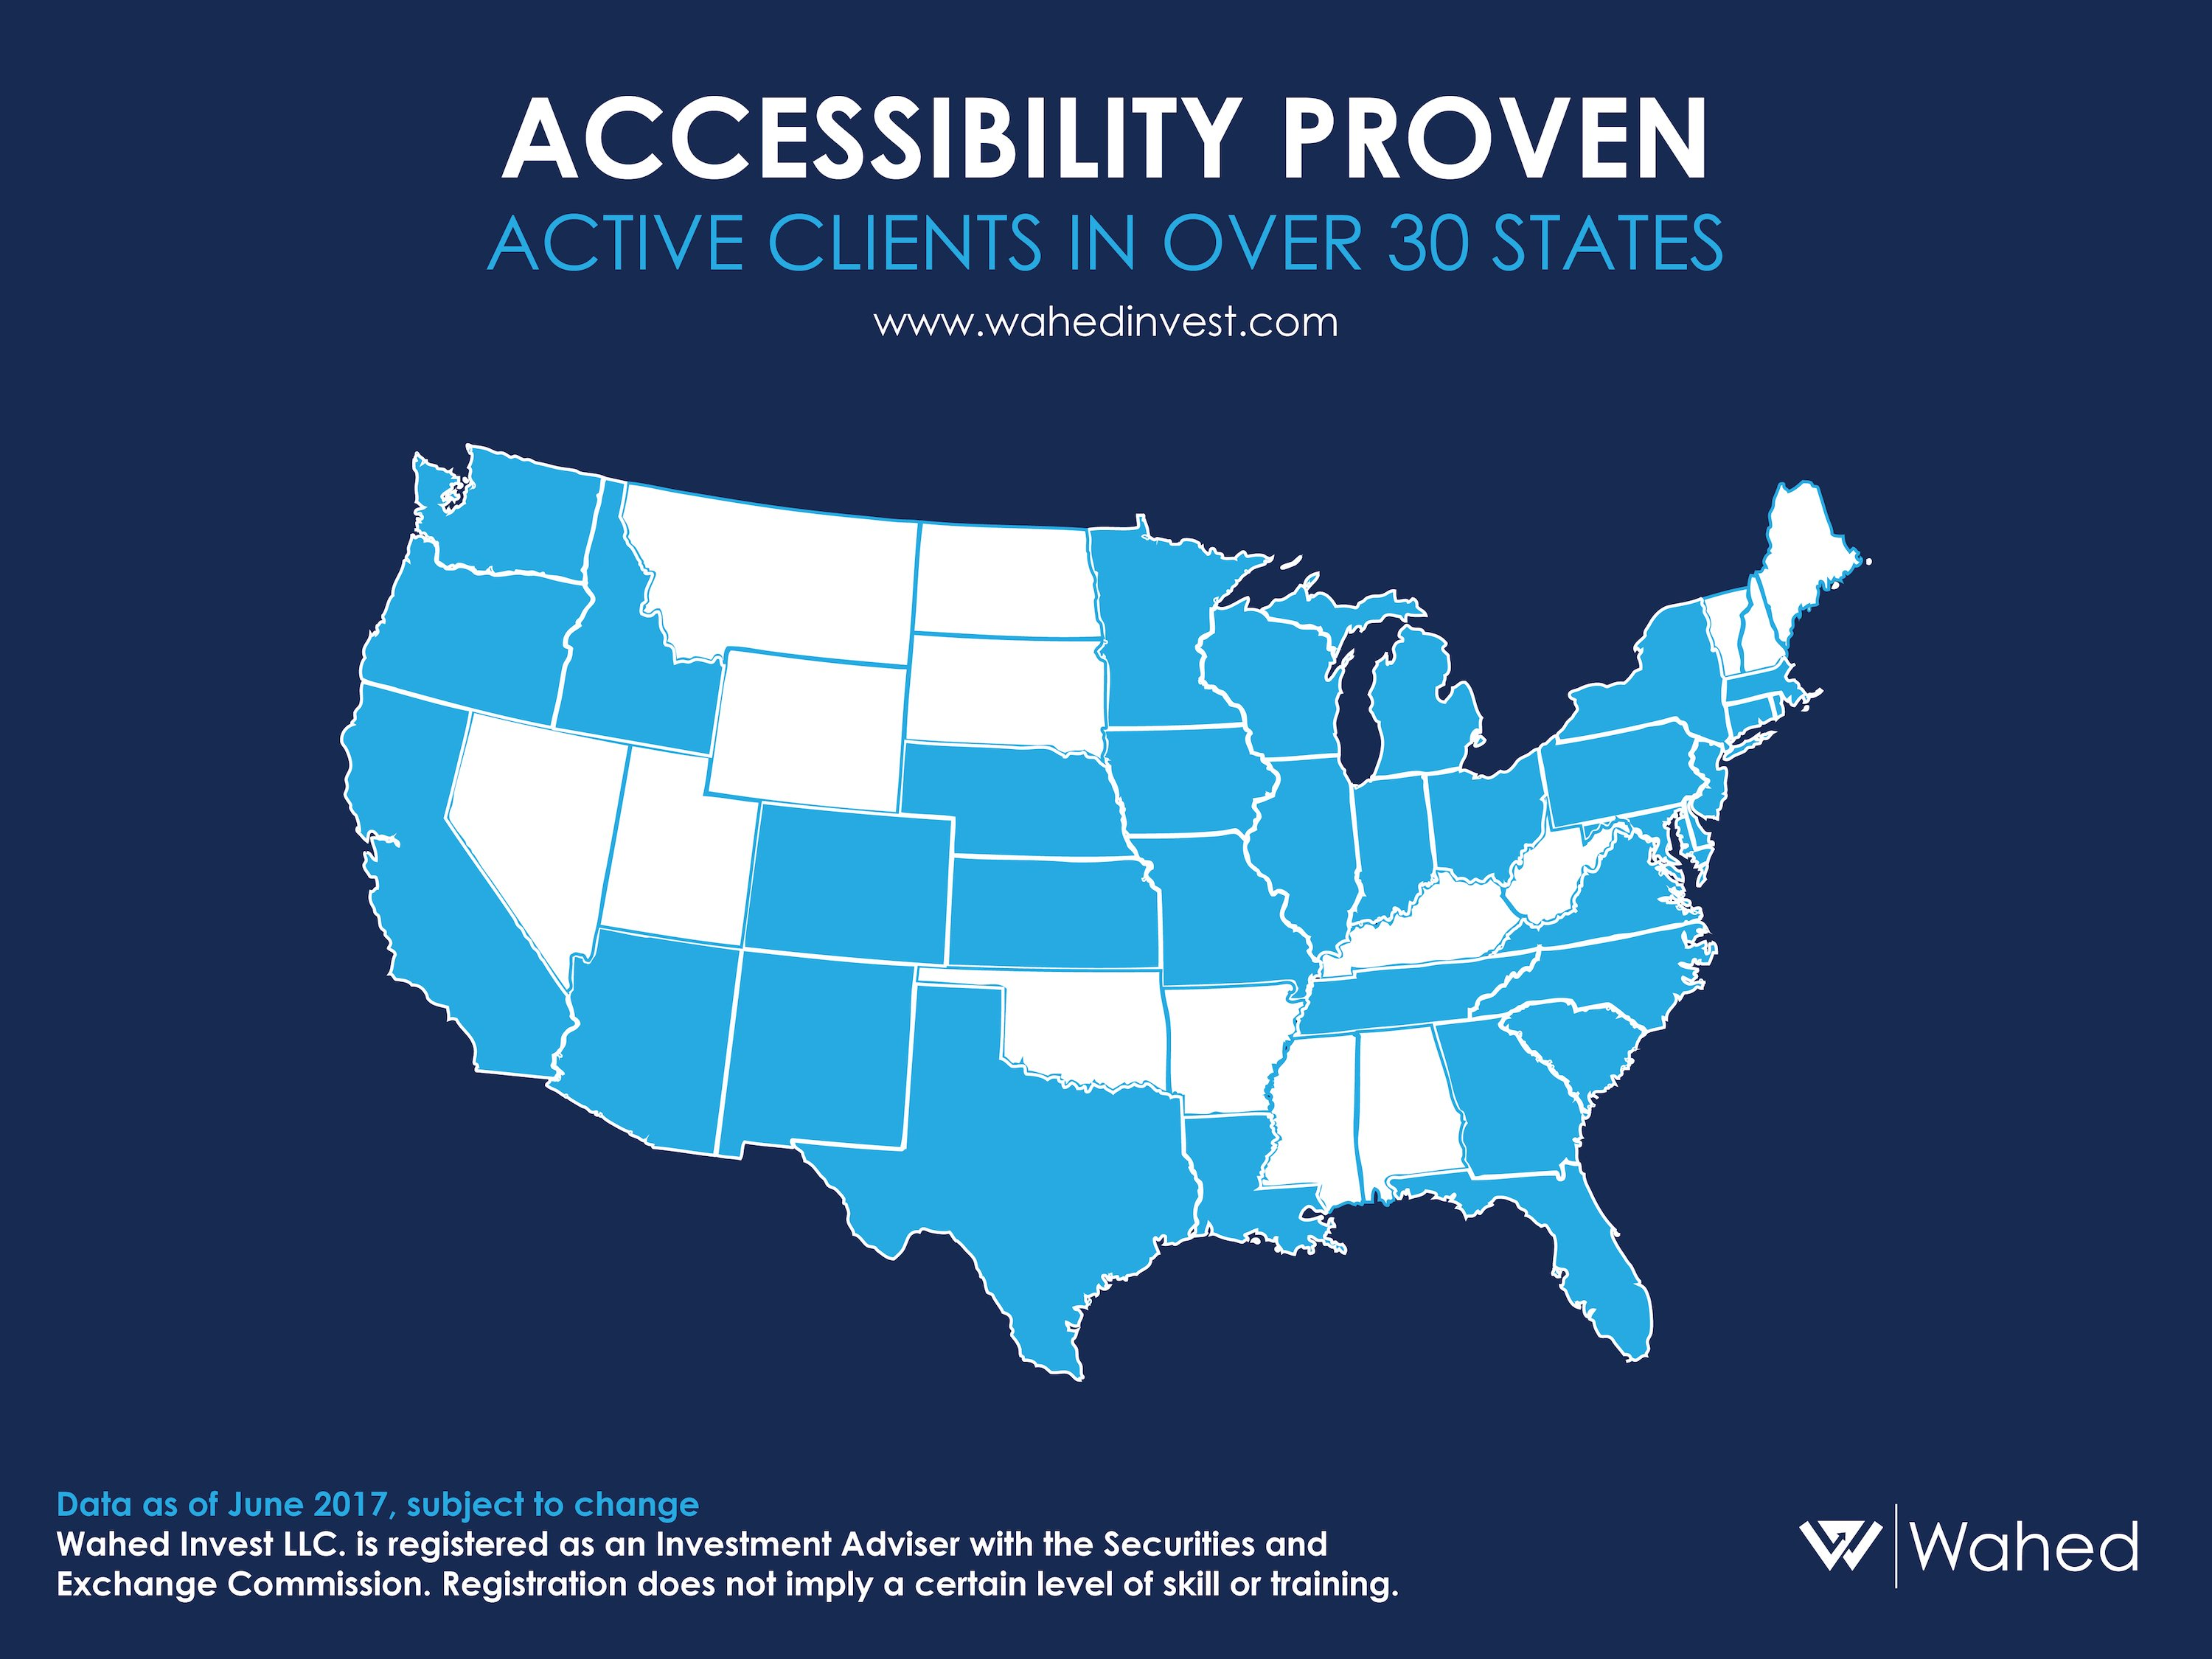 Our Story: Reaching Active Clients in More Than 30 States